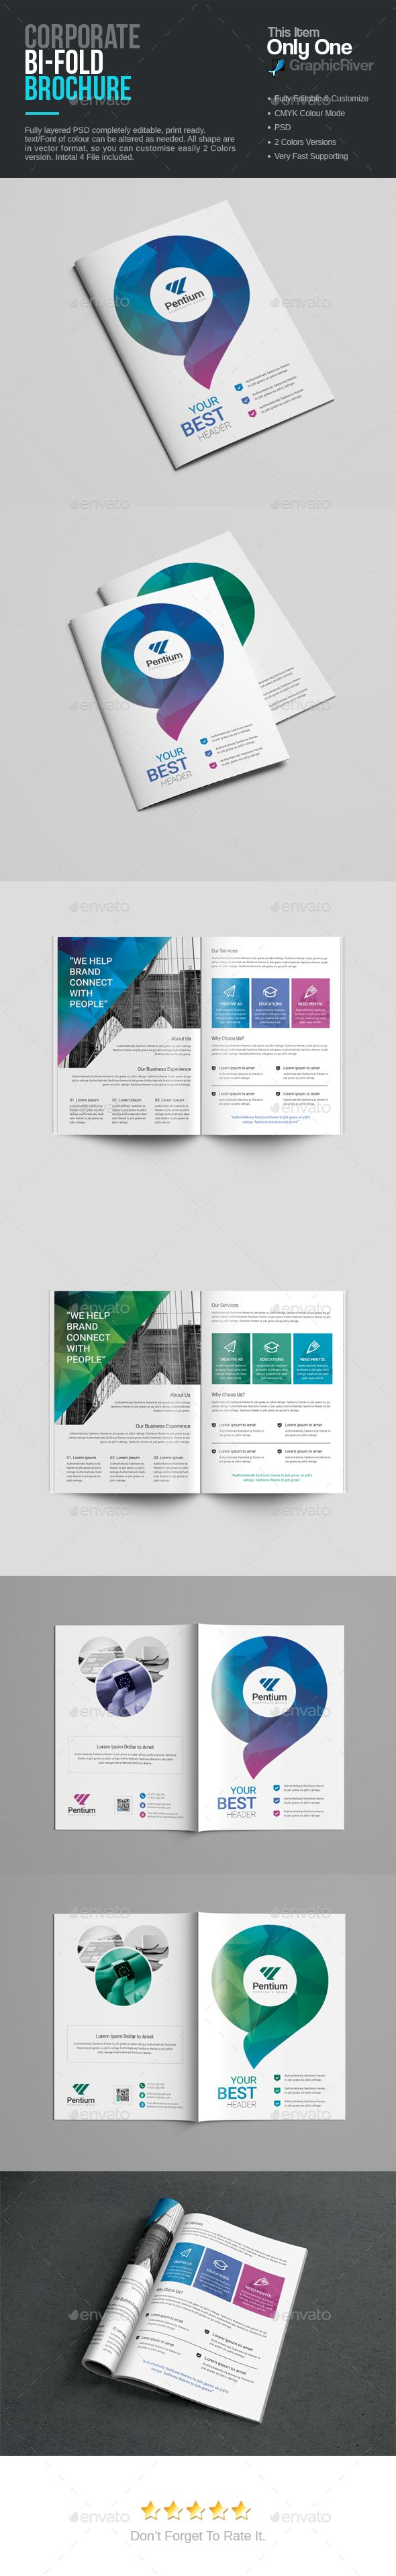 1000 images about brochure templates on pinterest for Indesign bi fold brochure template